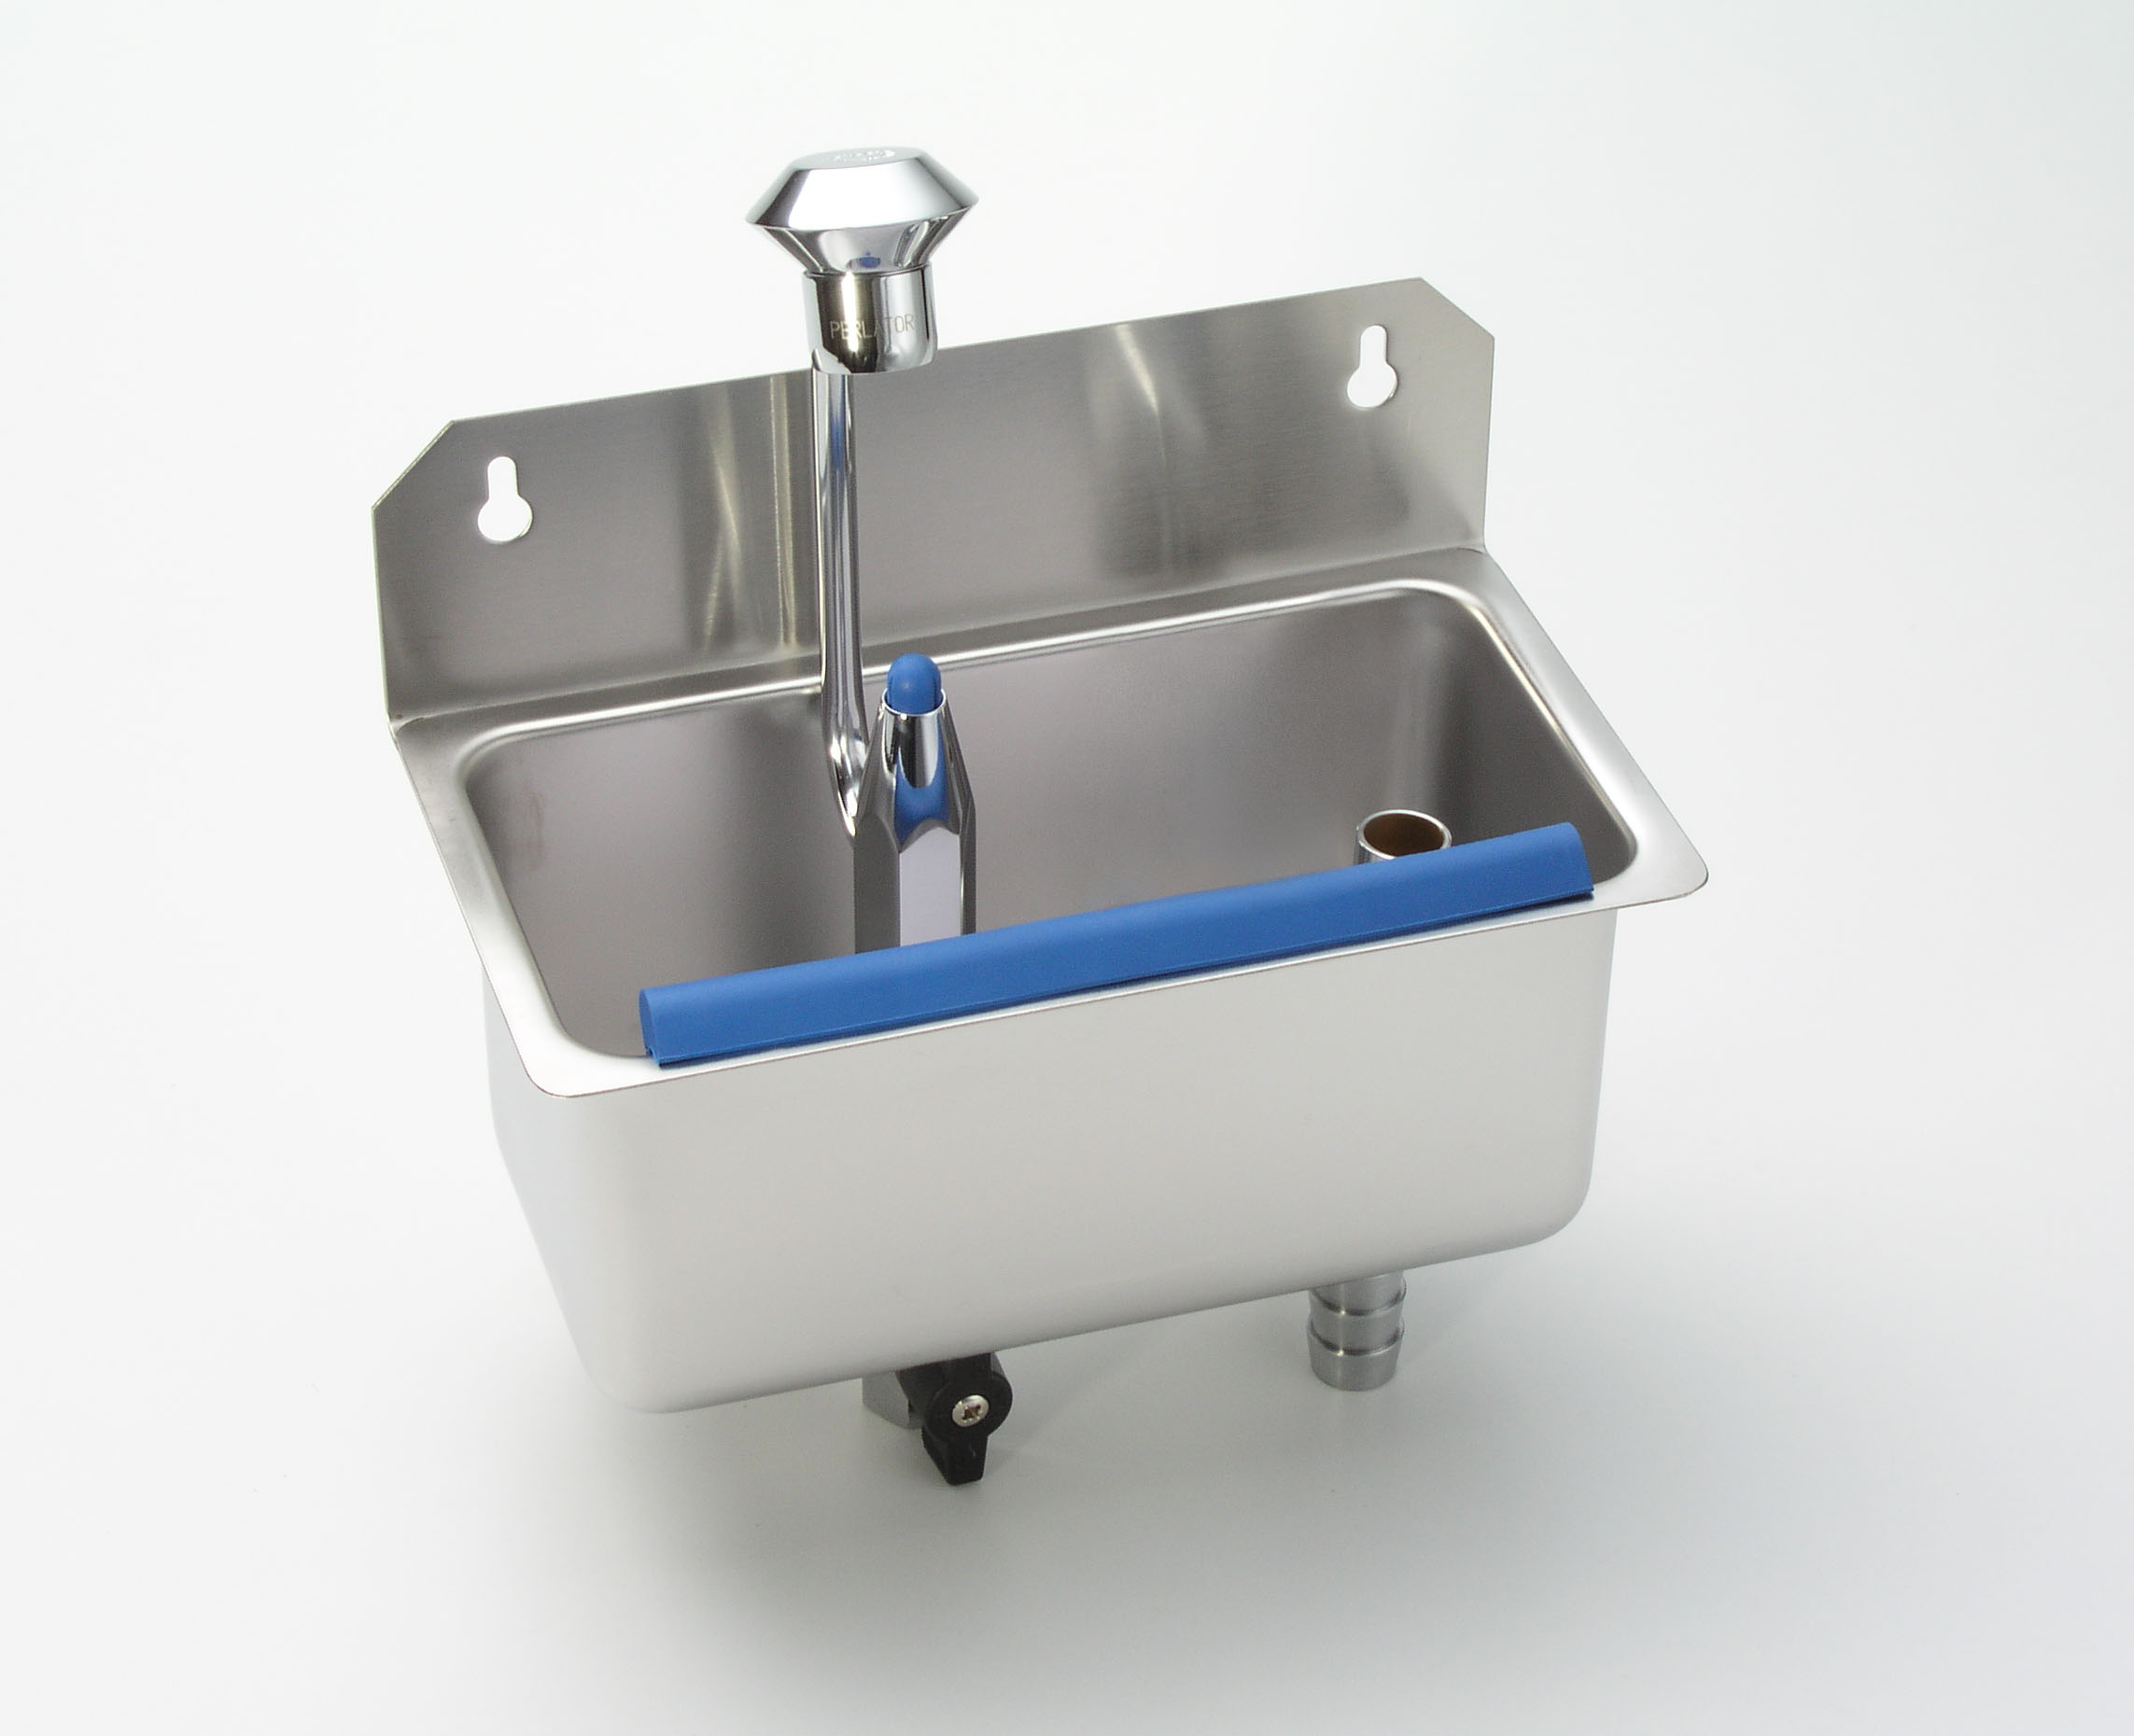 Wall Mounted Cleaning Sink - Model 55/16